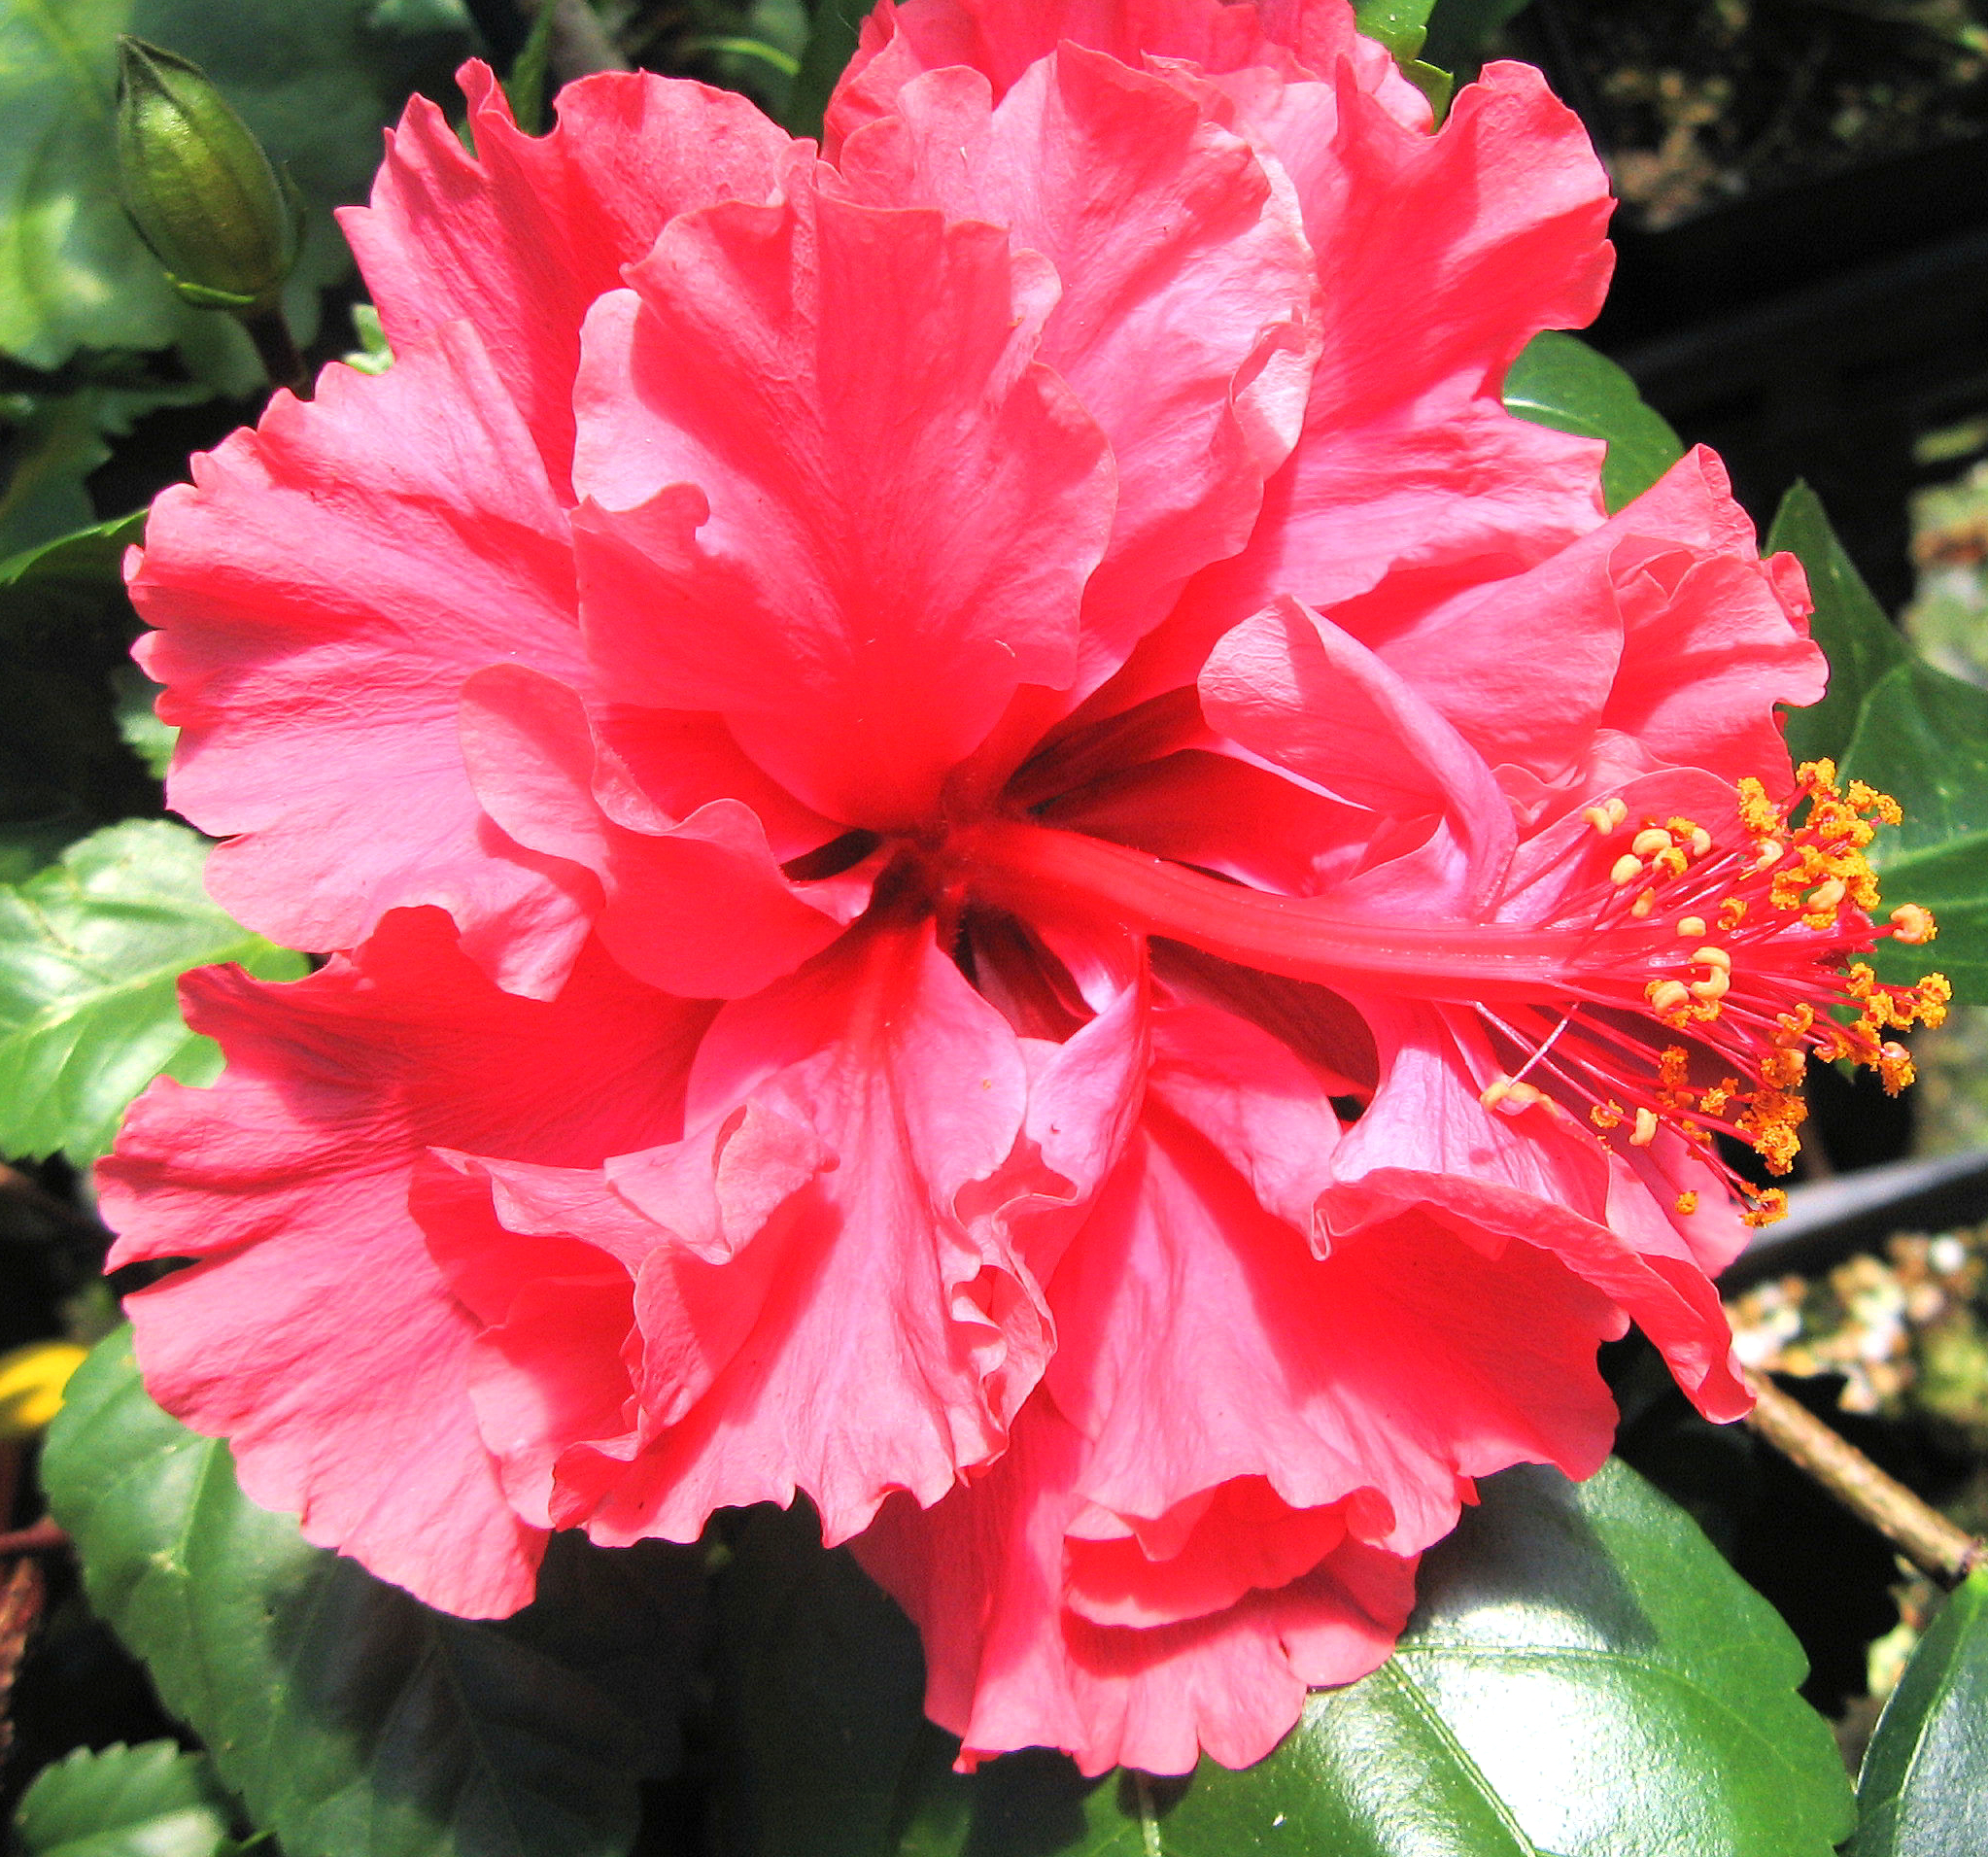 Pride Of Hankins Tree Tropical Hibiscus Live Plant Hot Pink Salmon